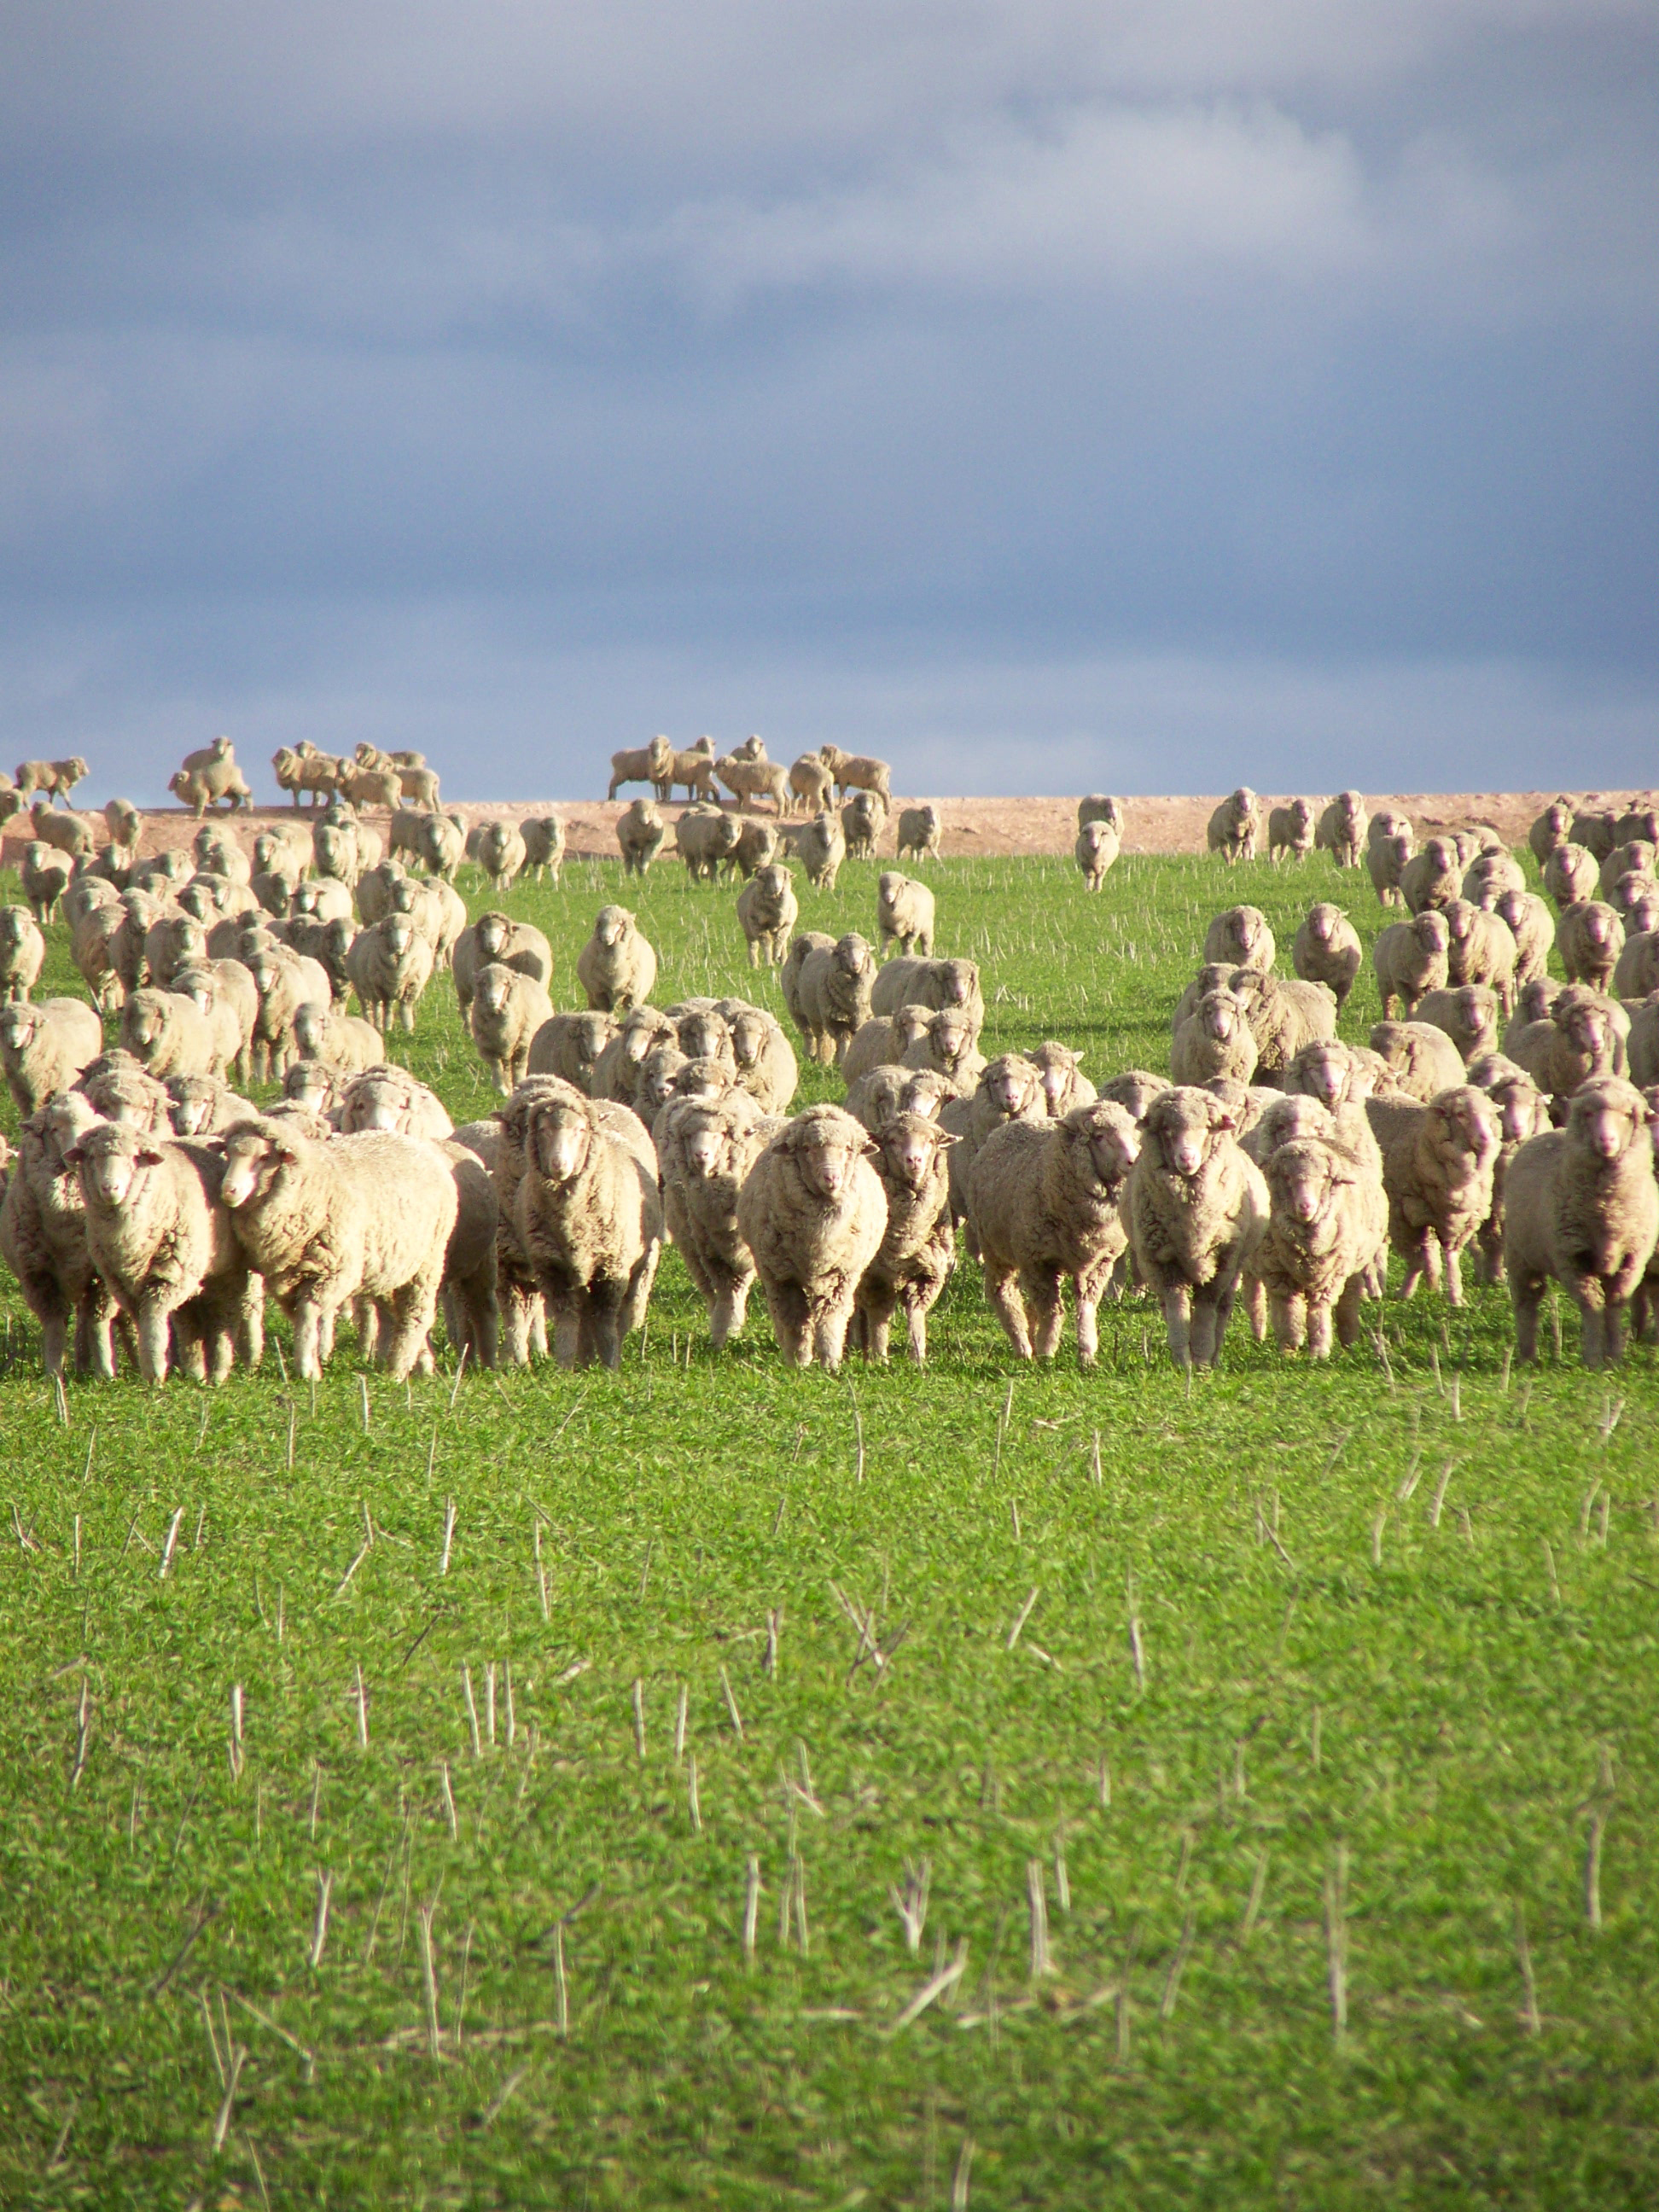 A flock of sheep grazing in a paddock.